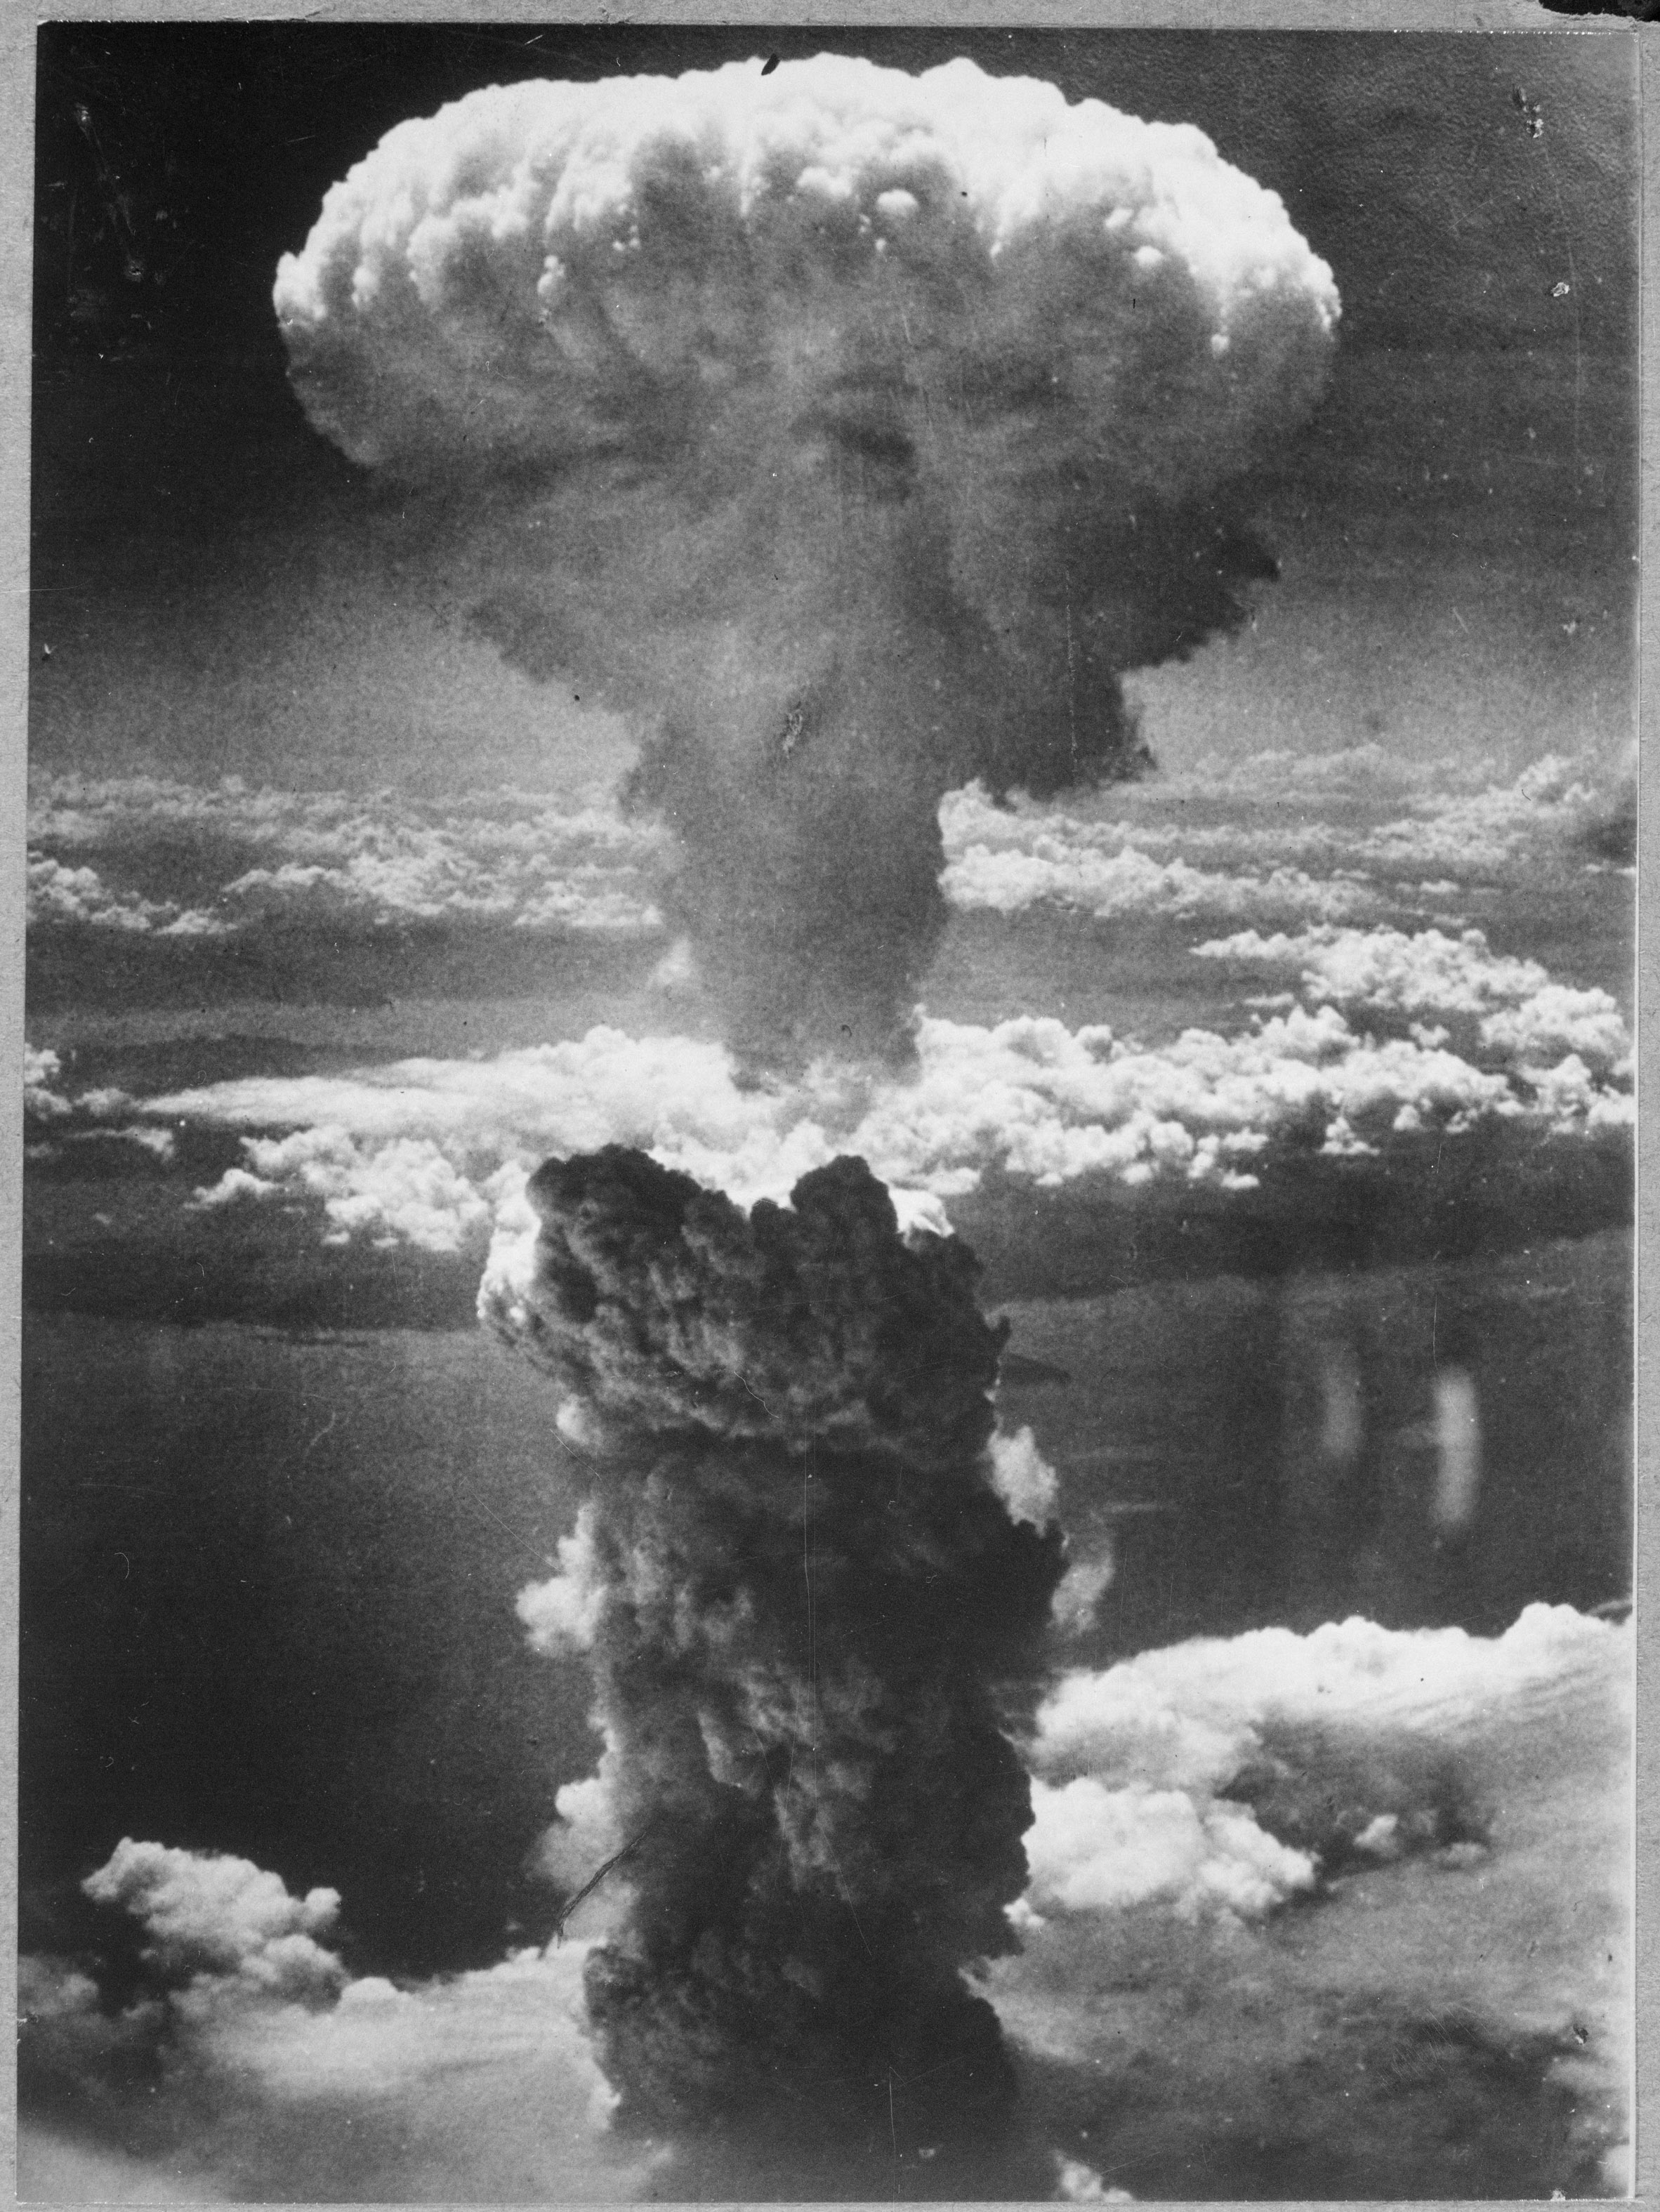 """Photograph of the Atomic Cloud Rising Over Nagasaki, Japan,"" August 9, 1945"